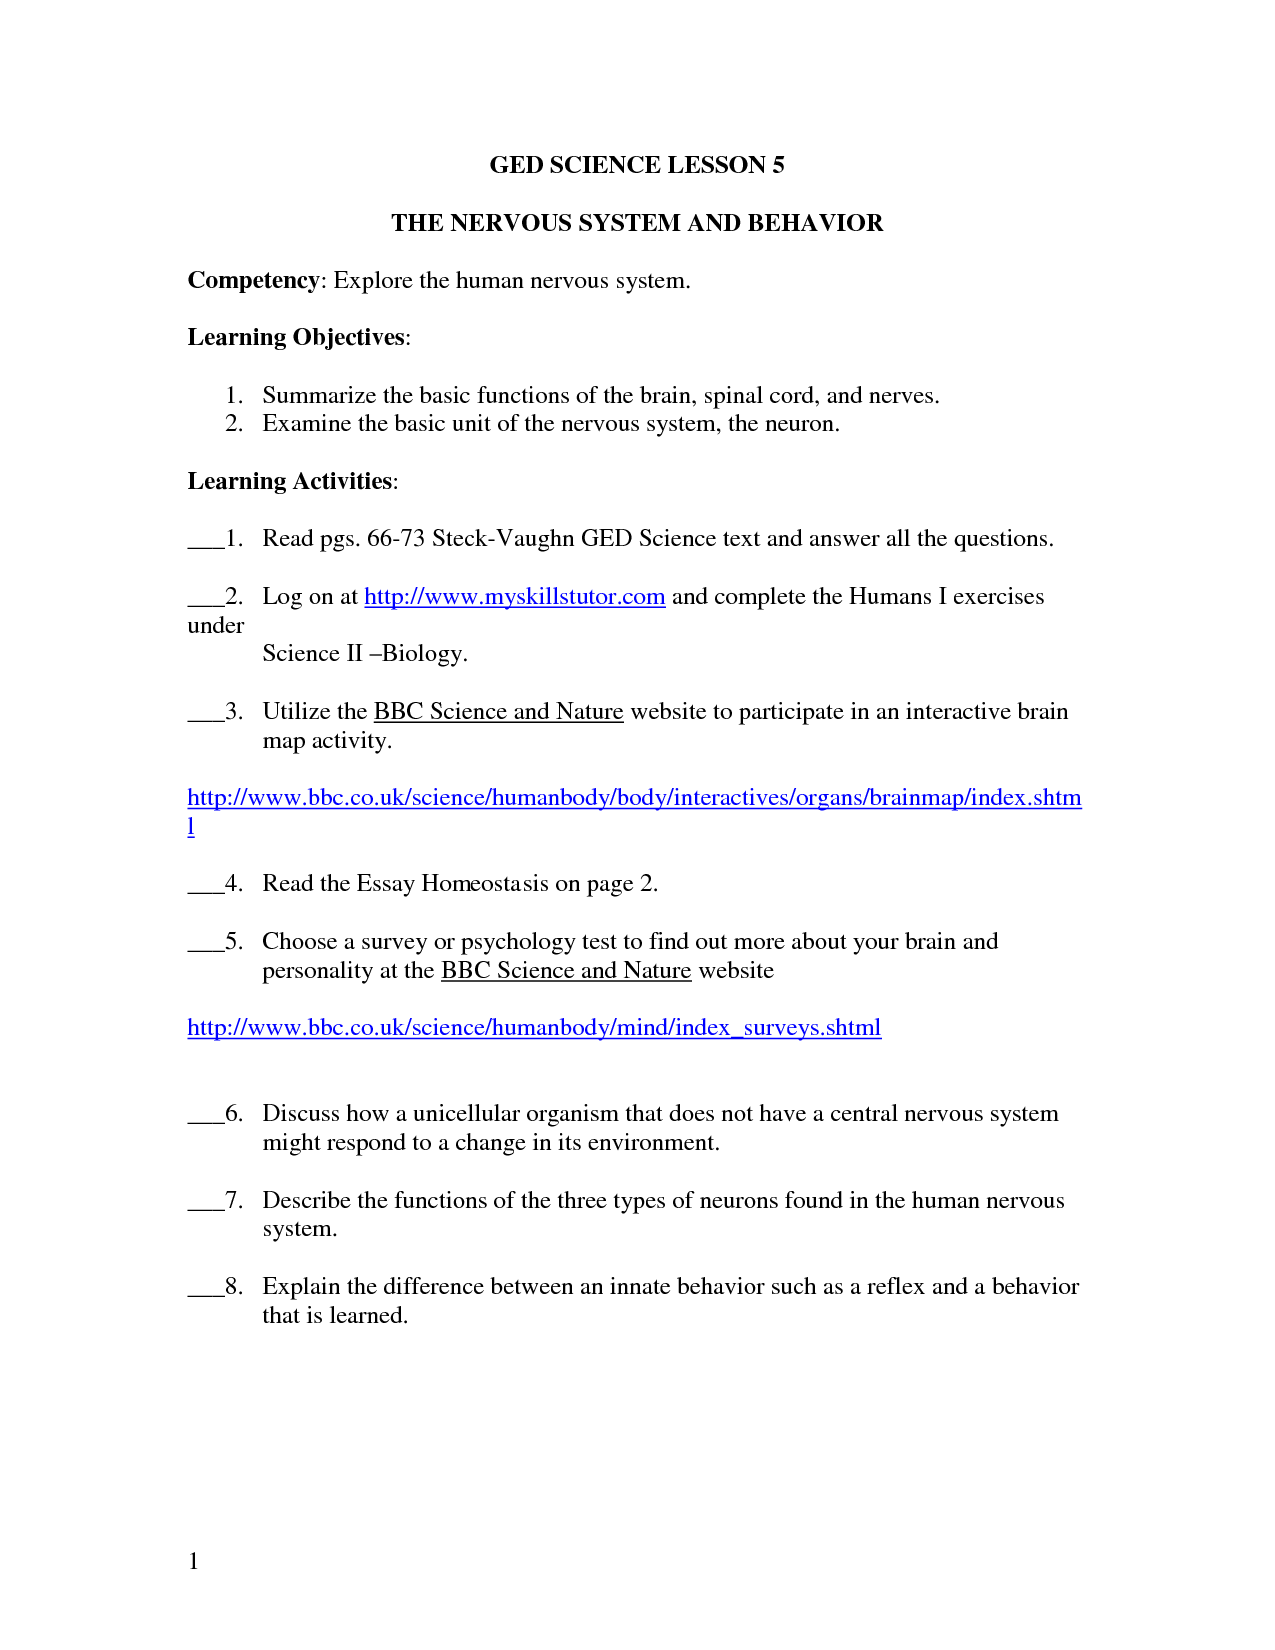 Worksheet Ged Science Worksheets Grass Fedjp Worksheet